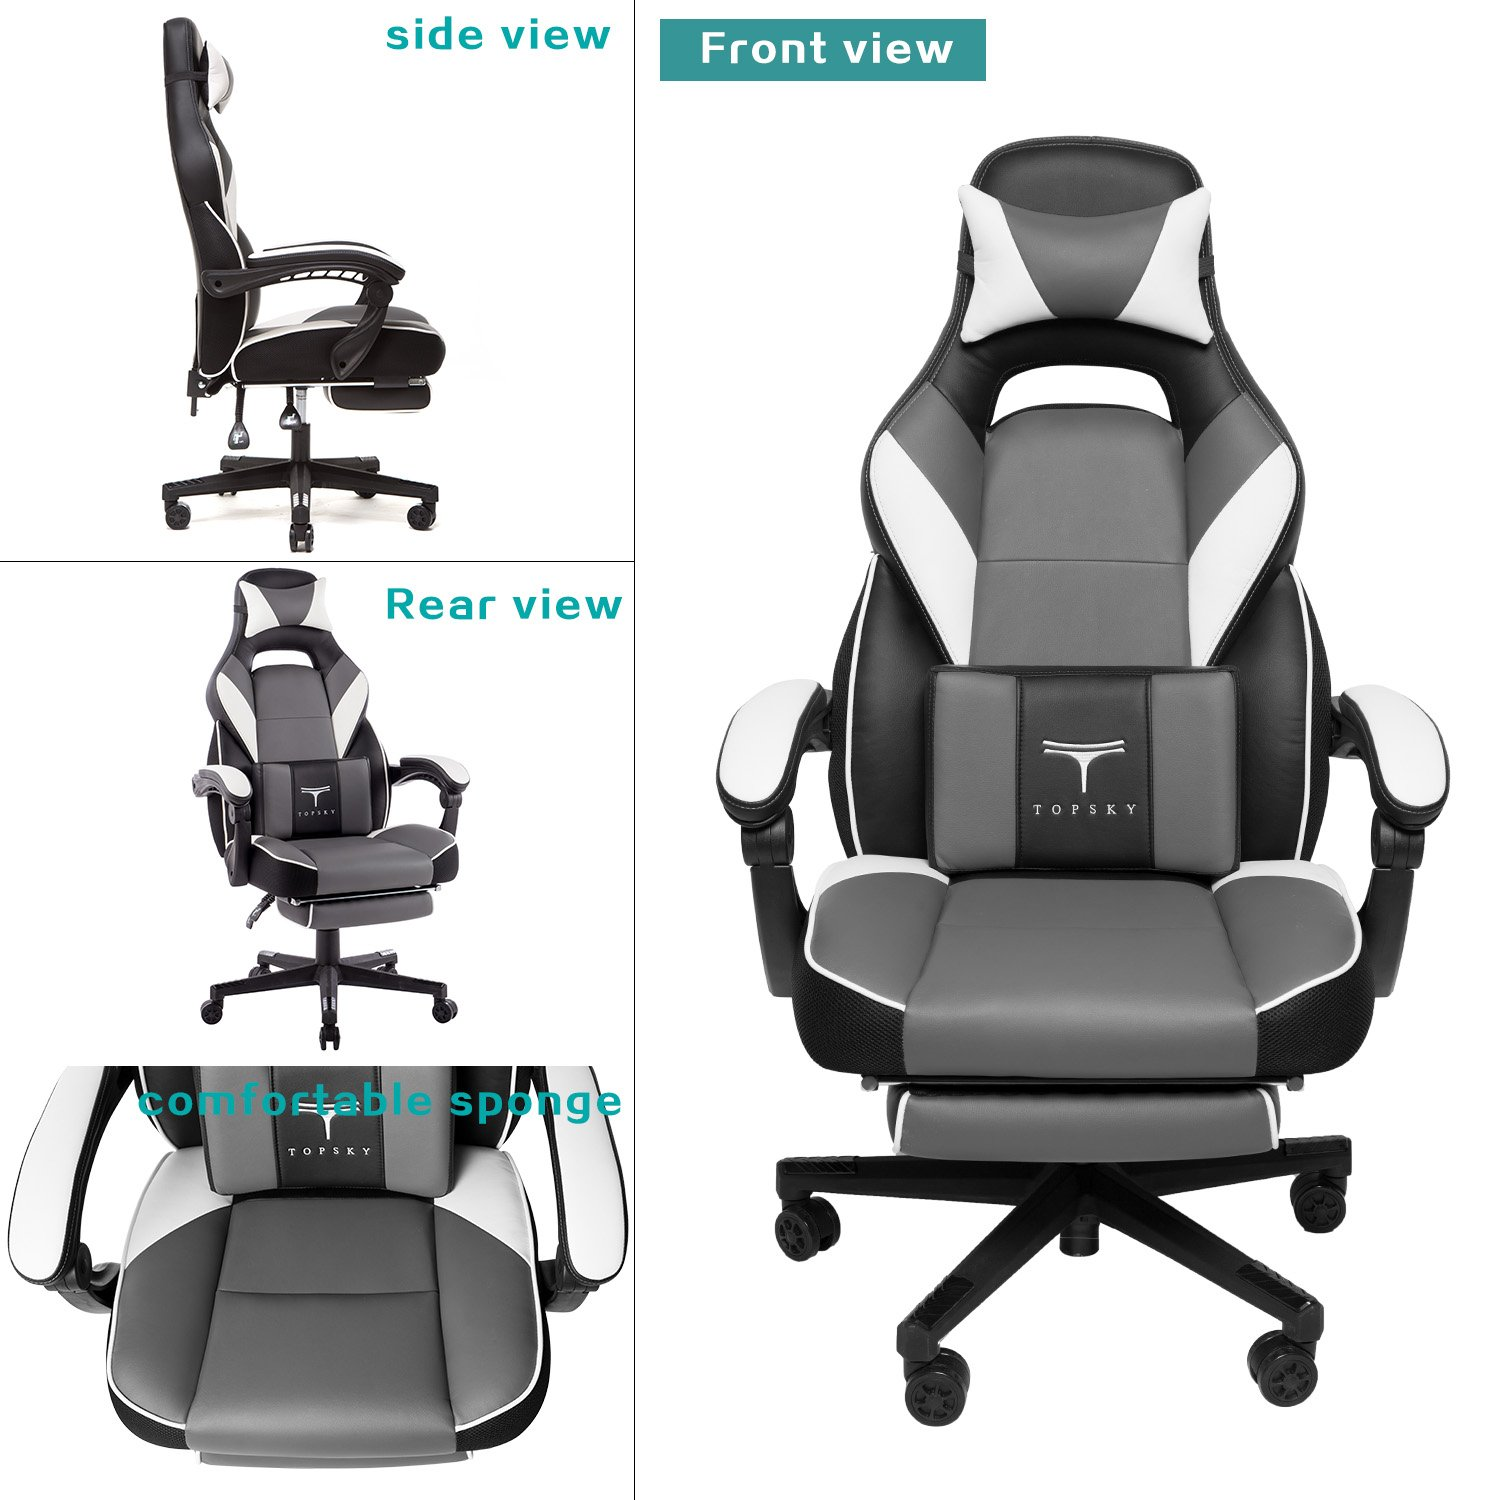 Cool Topsky High Back Racing Style Pu Leather Executive Computer Gaming Office Chair Ergonomic Reclining Design With Lumbar Cushion Footrest And Headrest Alphanode Cool Chair Designs And Ideas Alphanodeonline